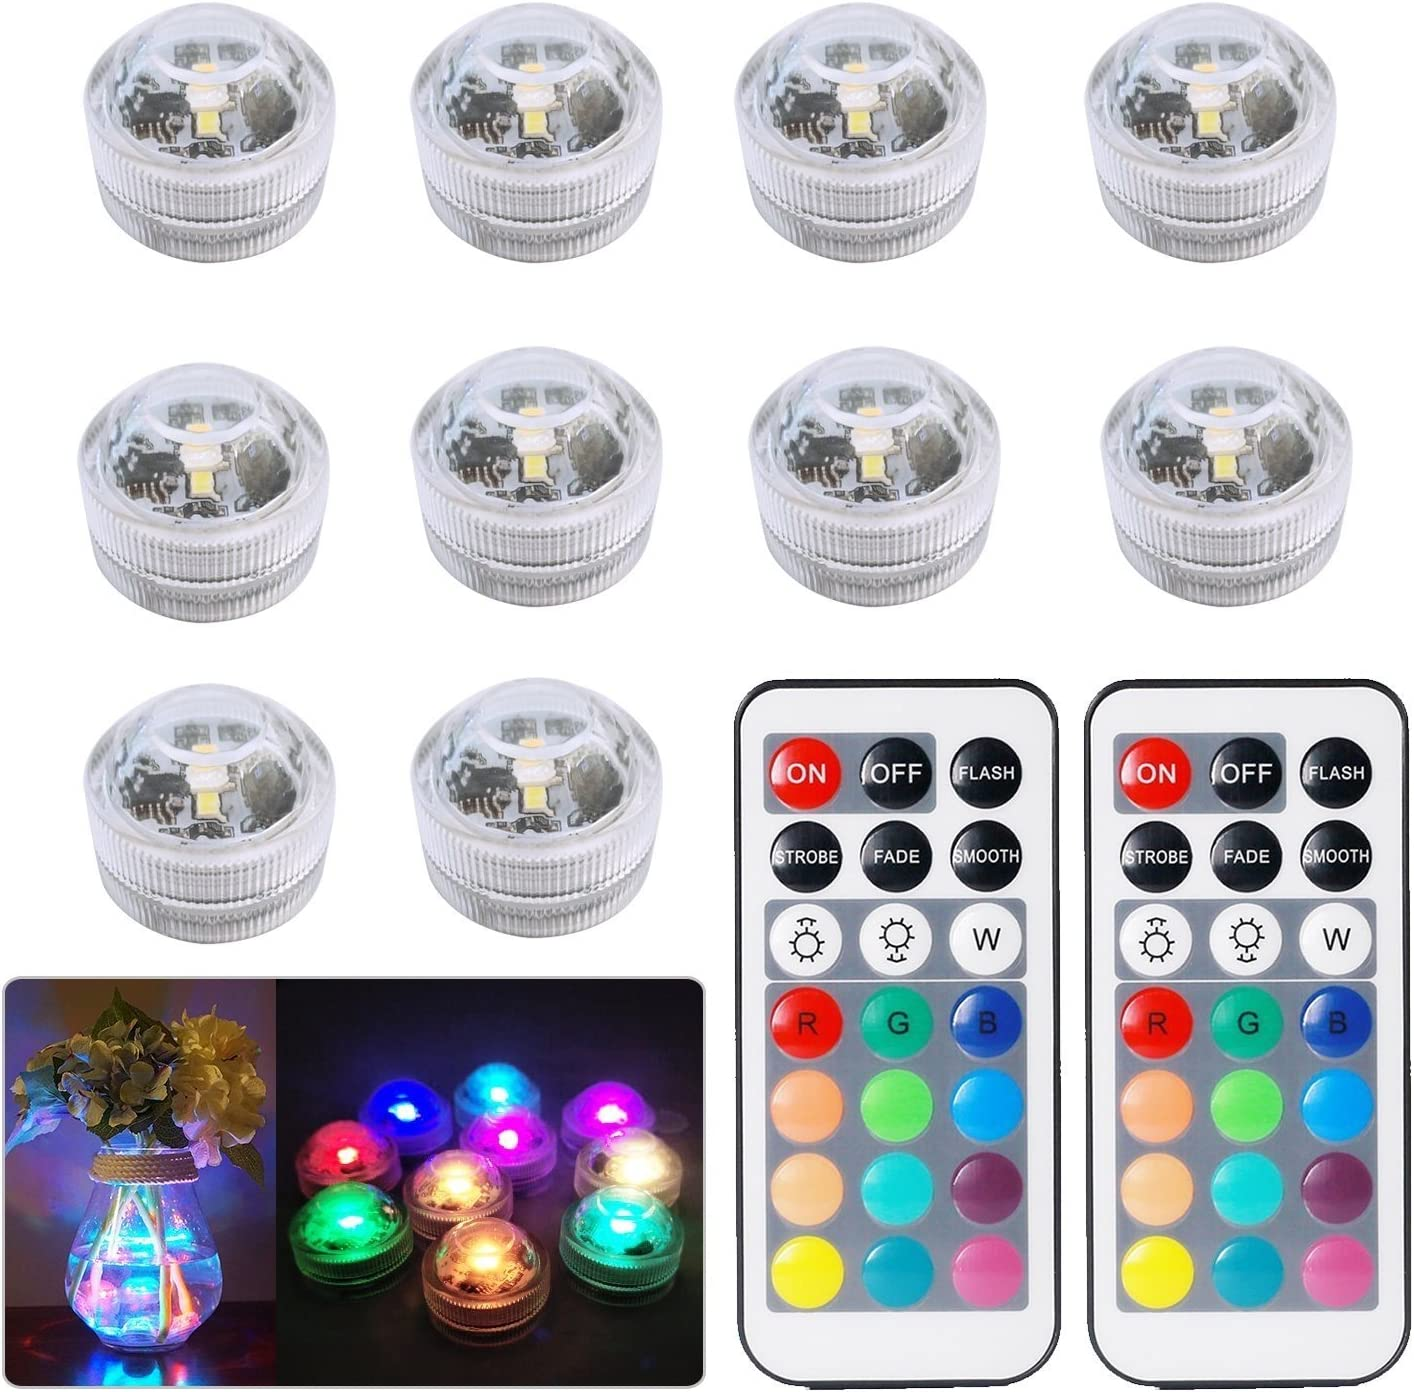 10pcs Luces sumergibles LED Luces subacuáticas impermeables SMD ...